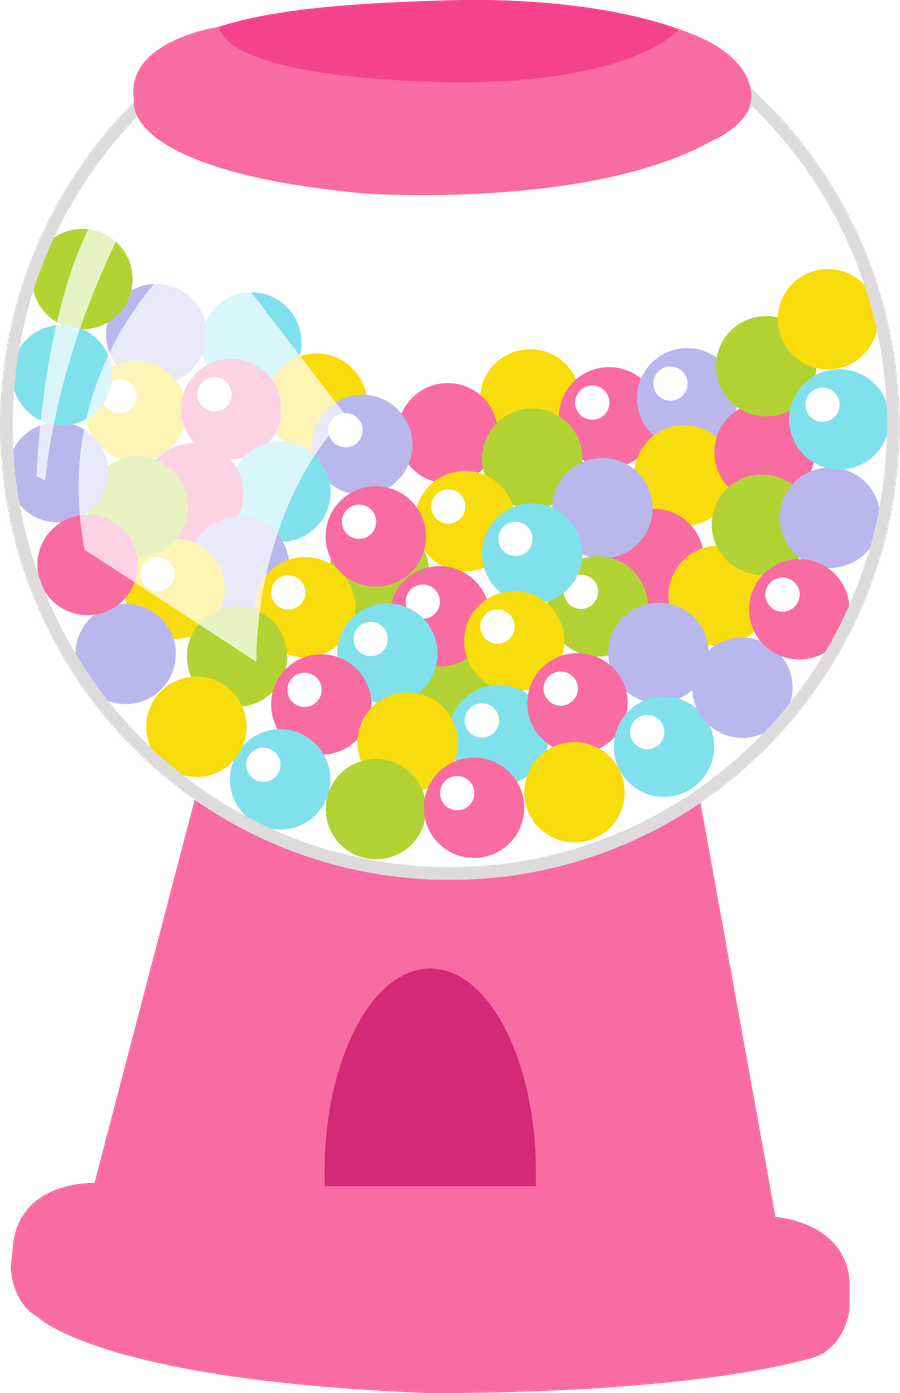 minus say hello cliparts pinterest clip art art kids and rh pinterest com candyland clipart free candyland characters clipart